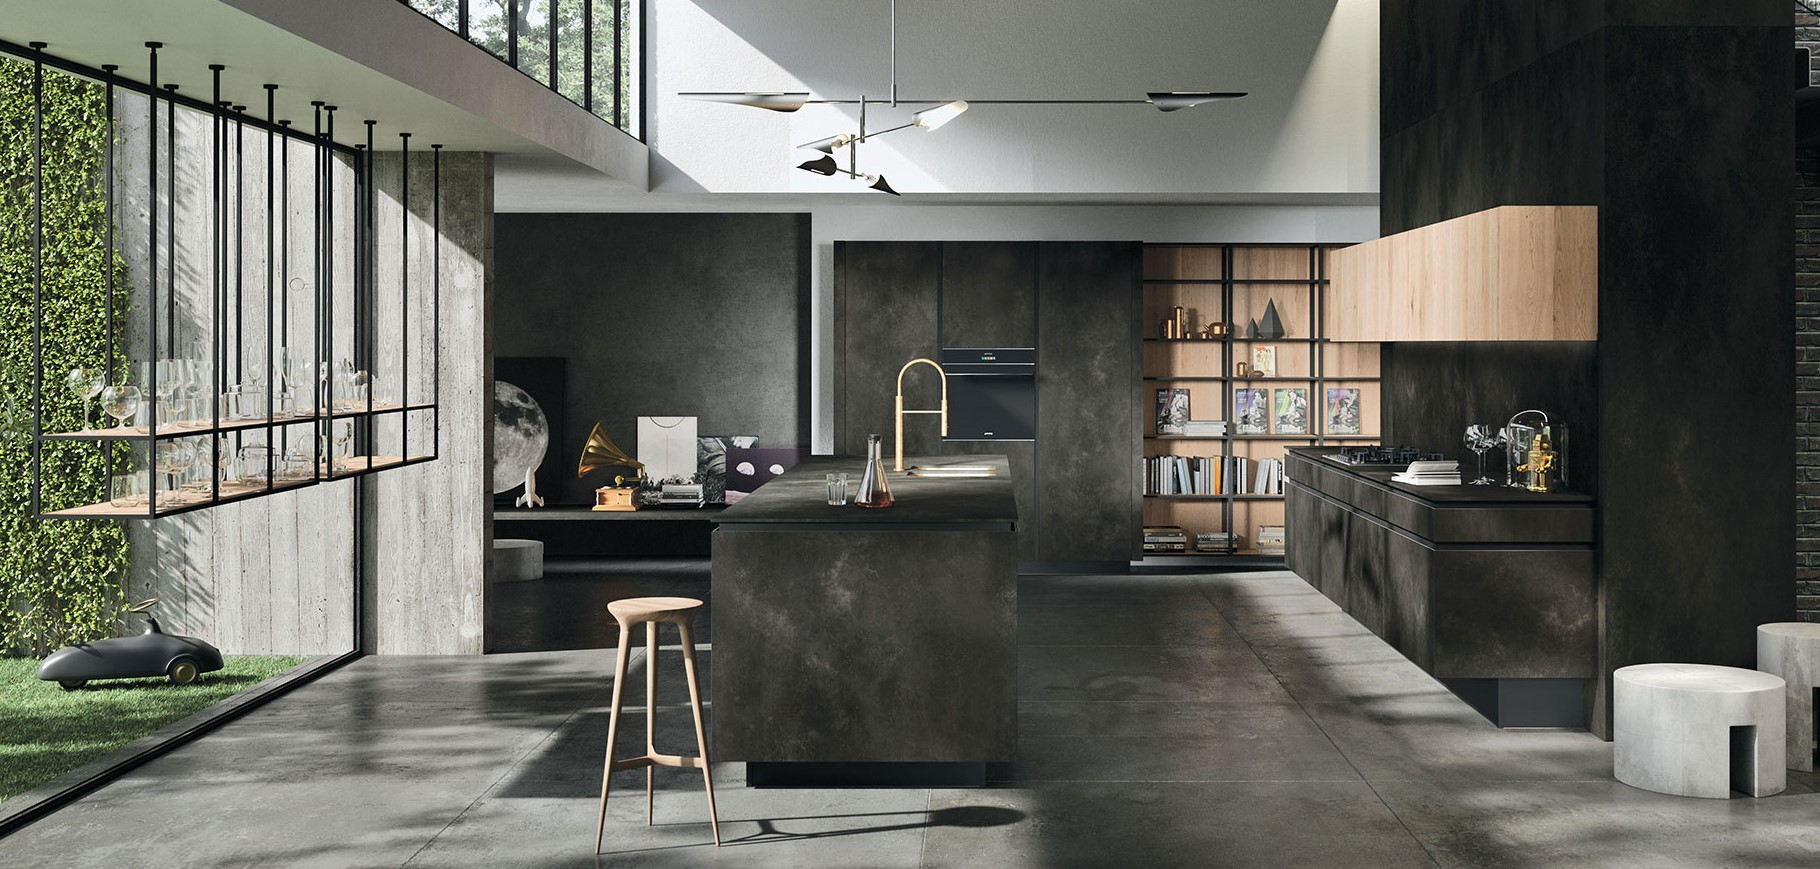 Cucine di design un viaggio tra stili e nuovi materiali for Cucine di design